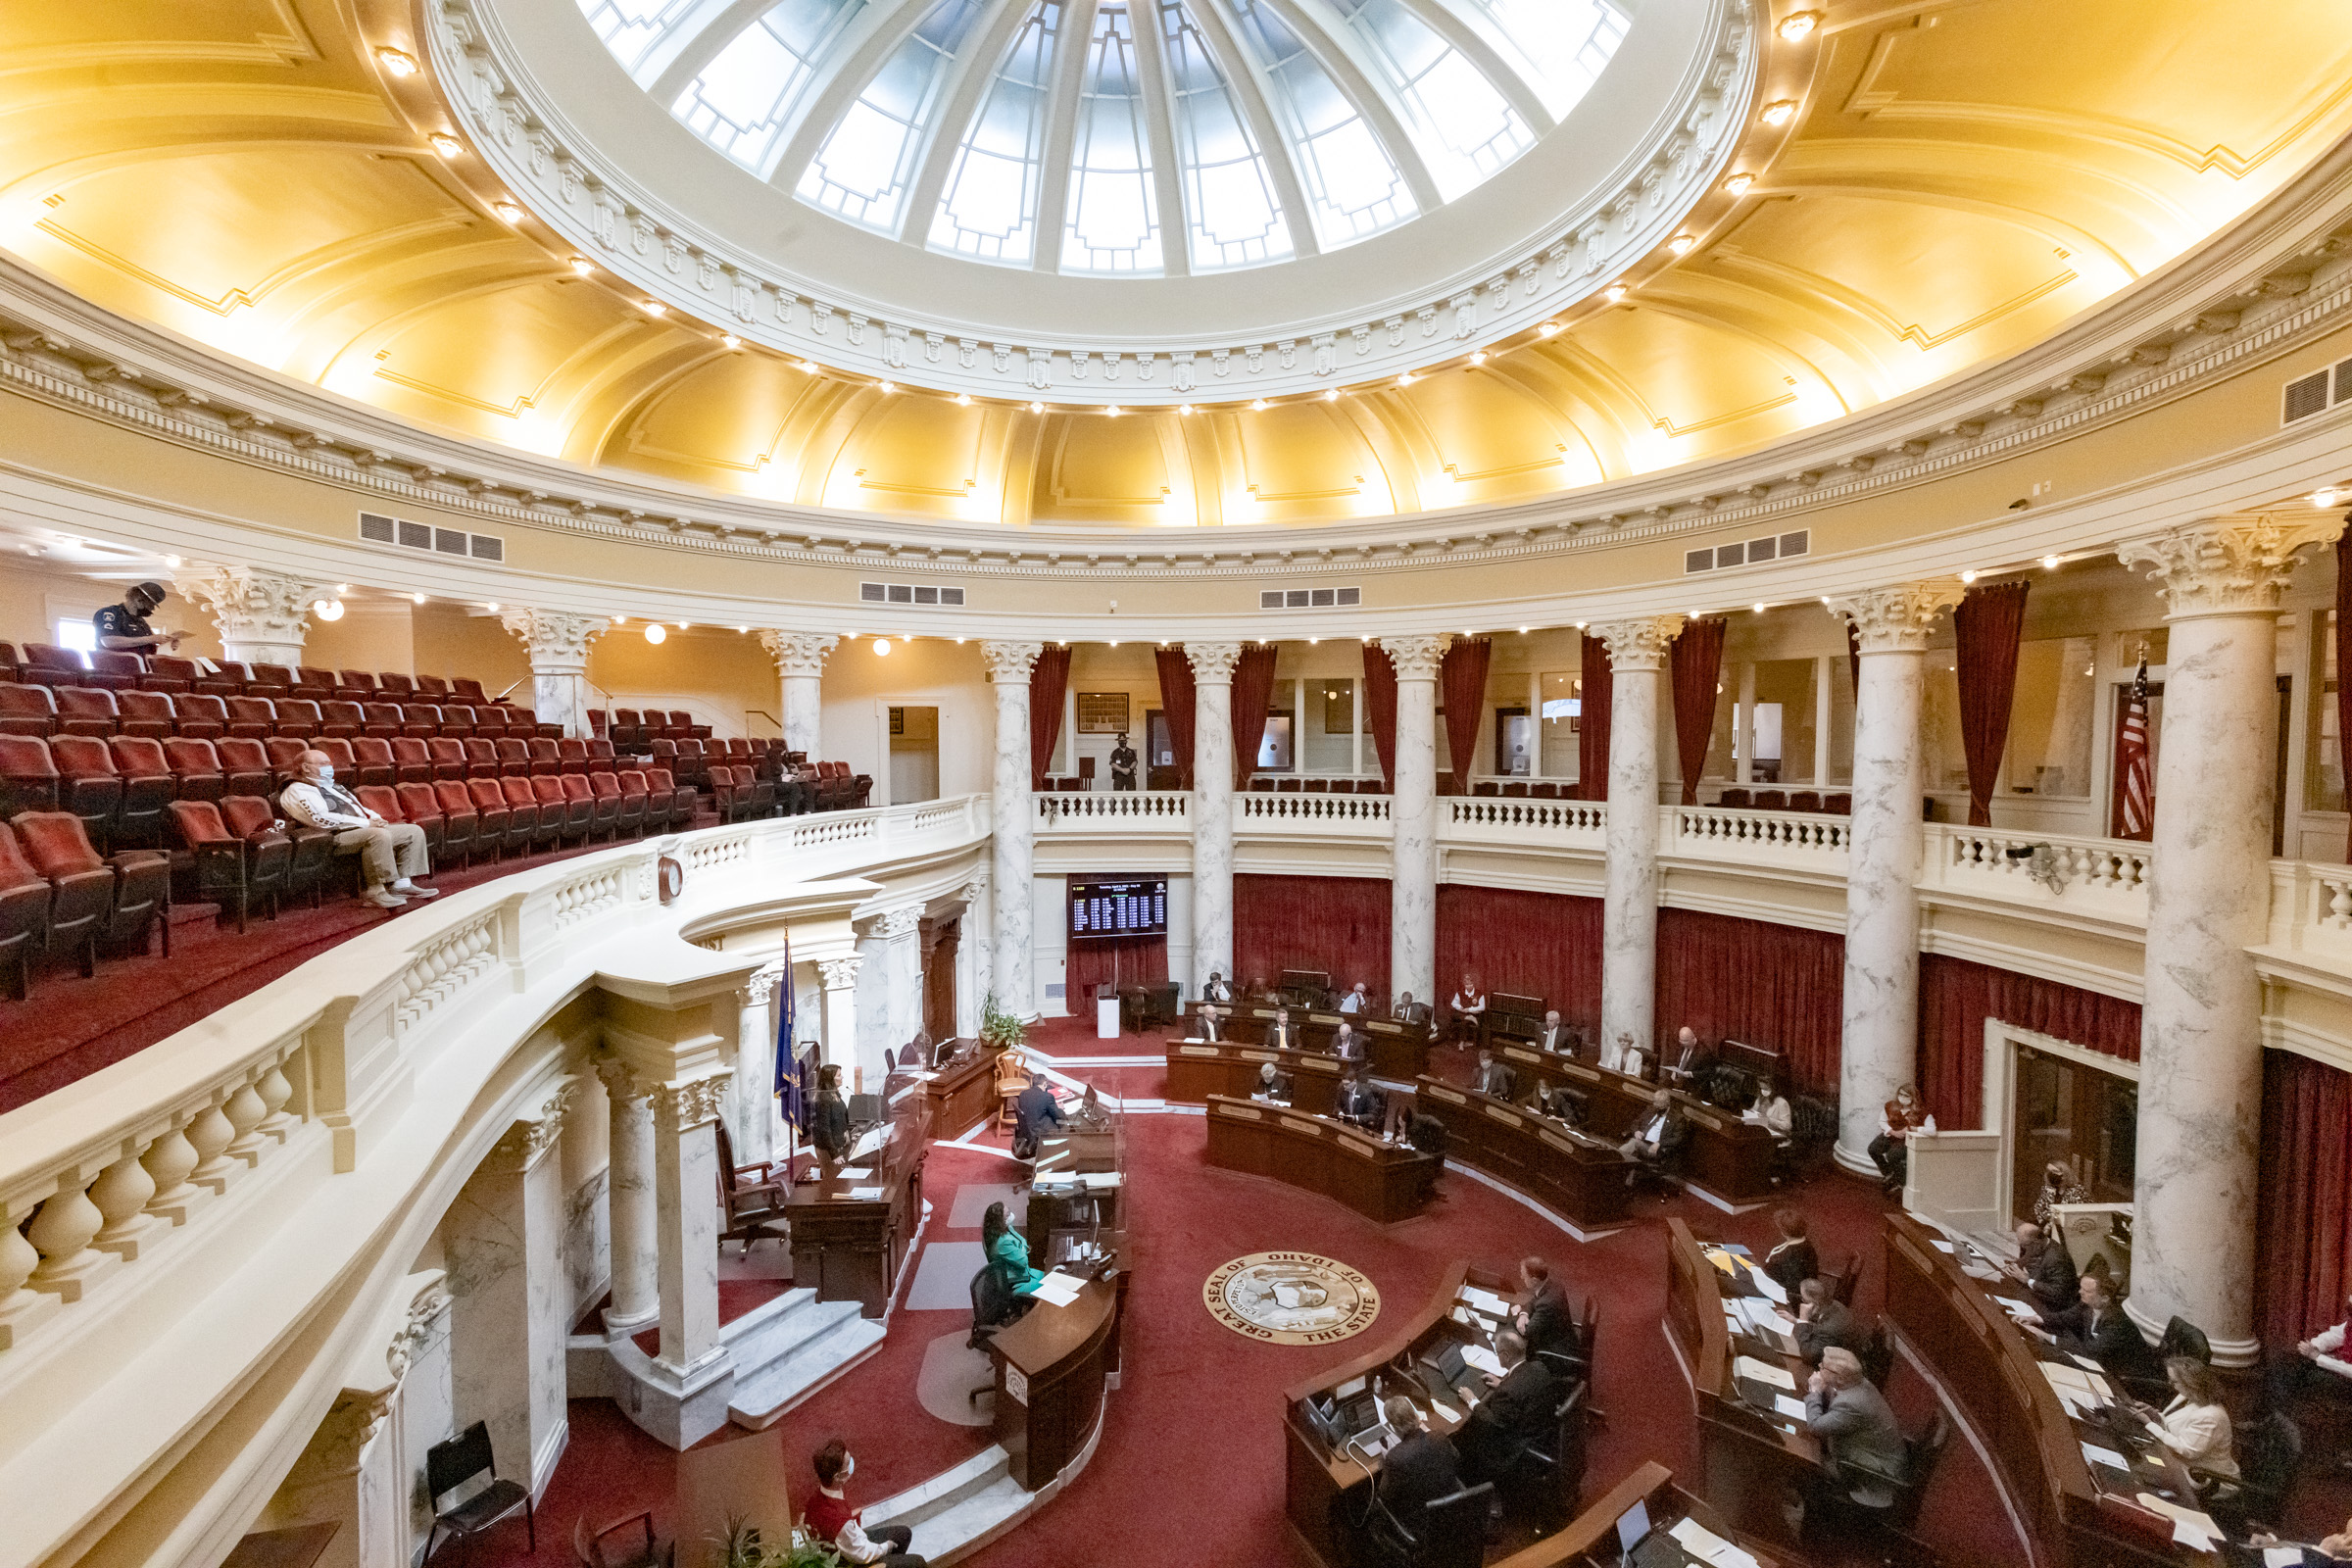 The Senate in session at the Idaho Capitol on April 6, 2021.